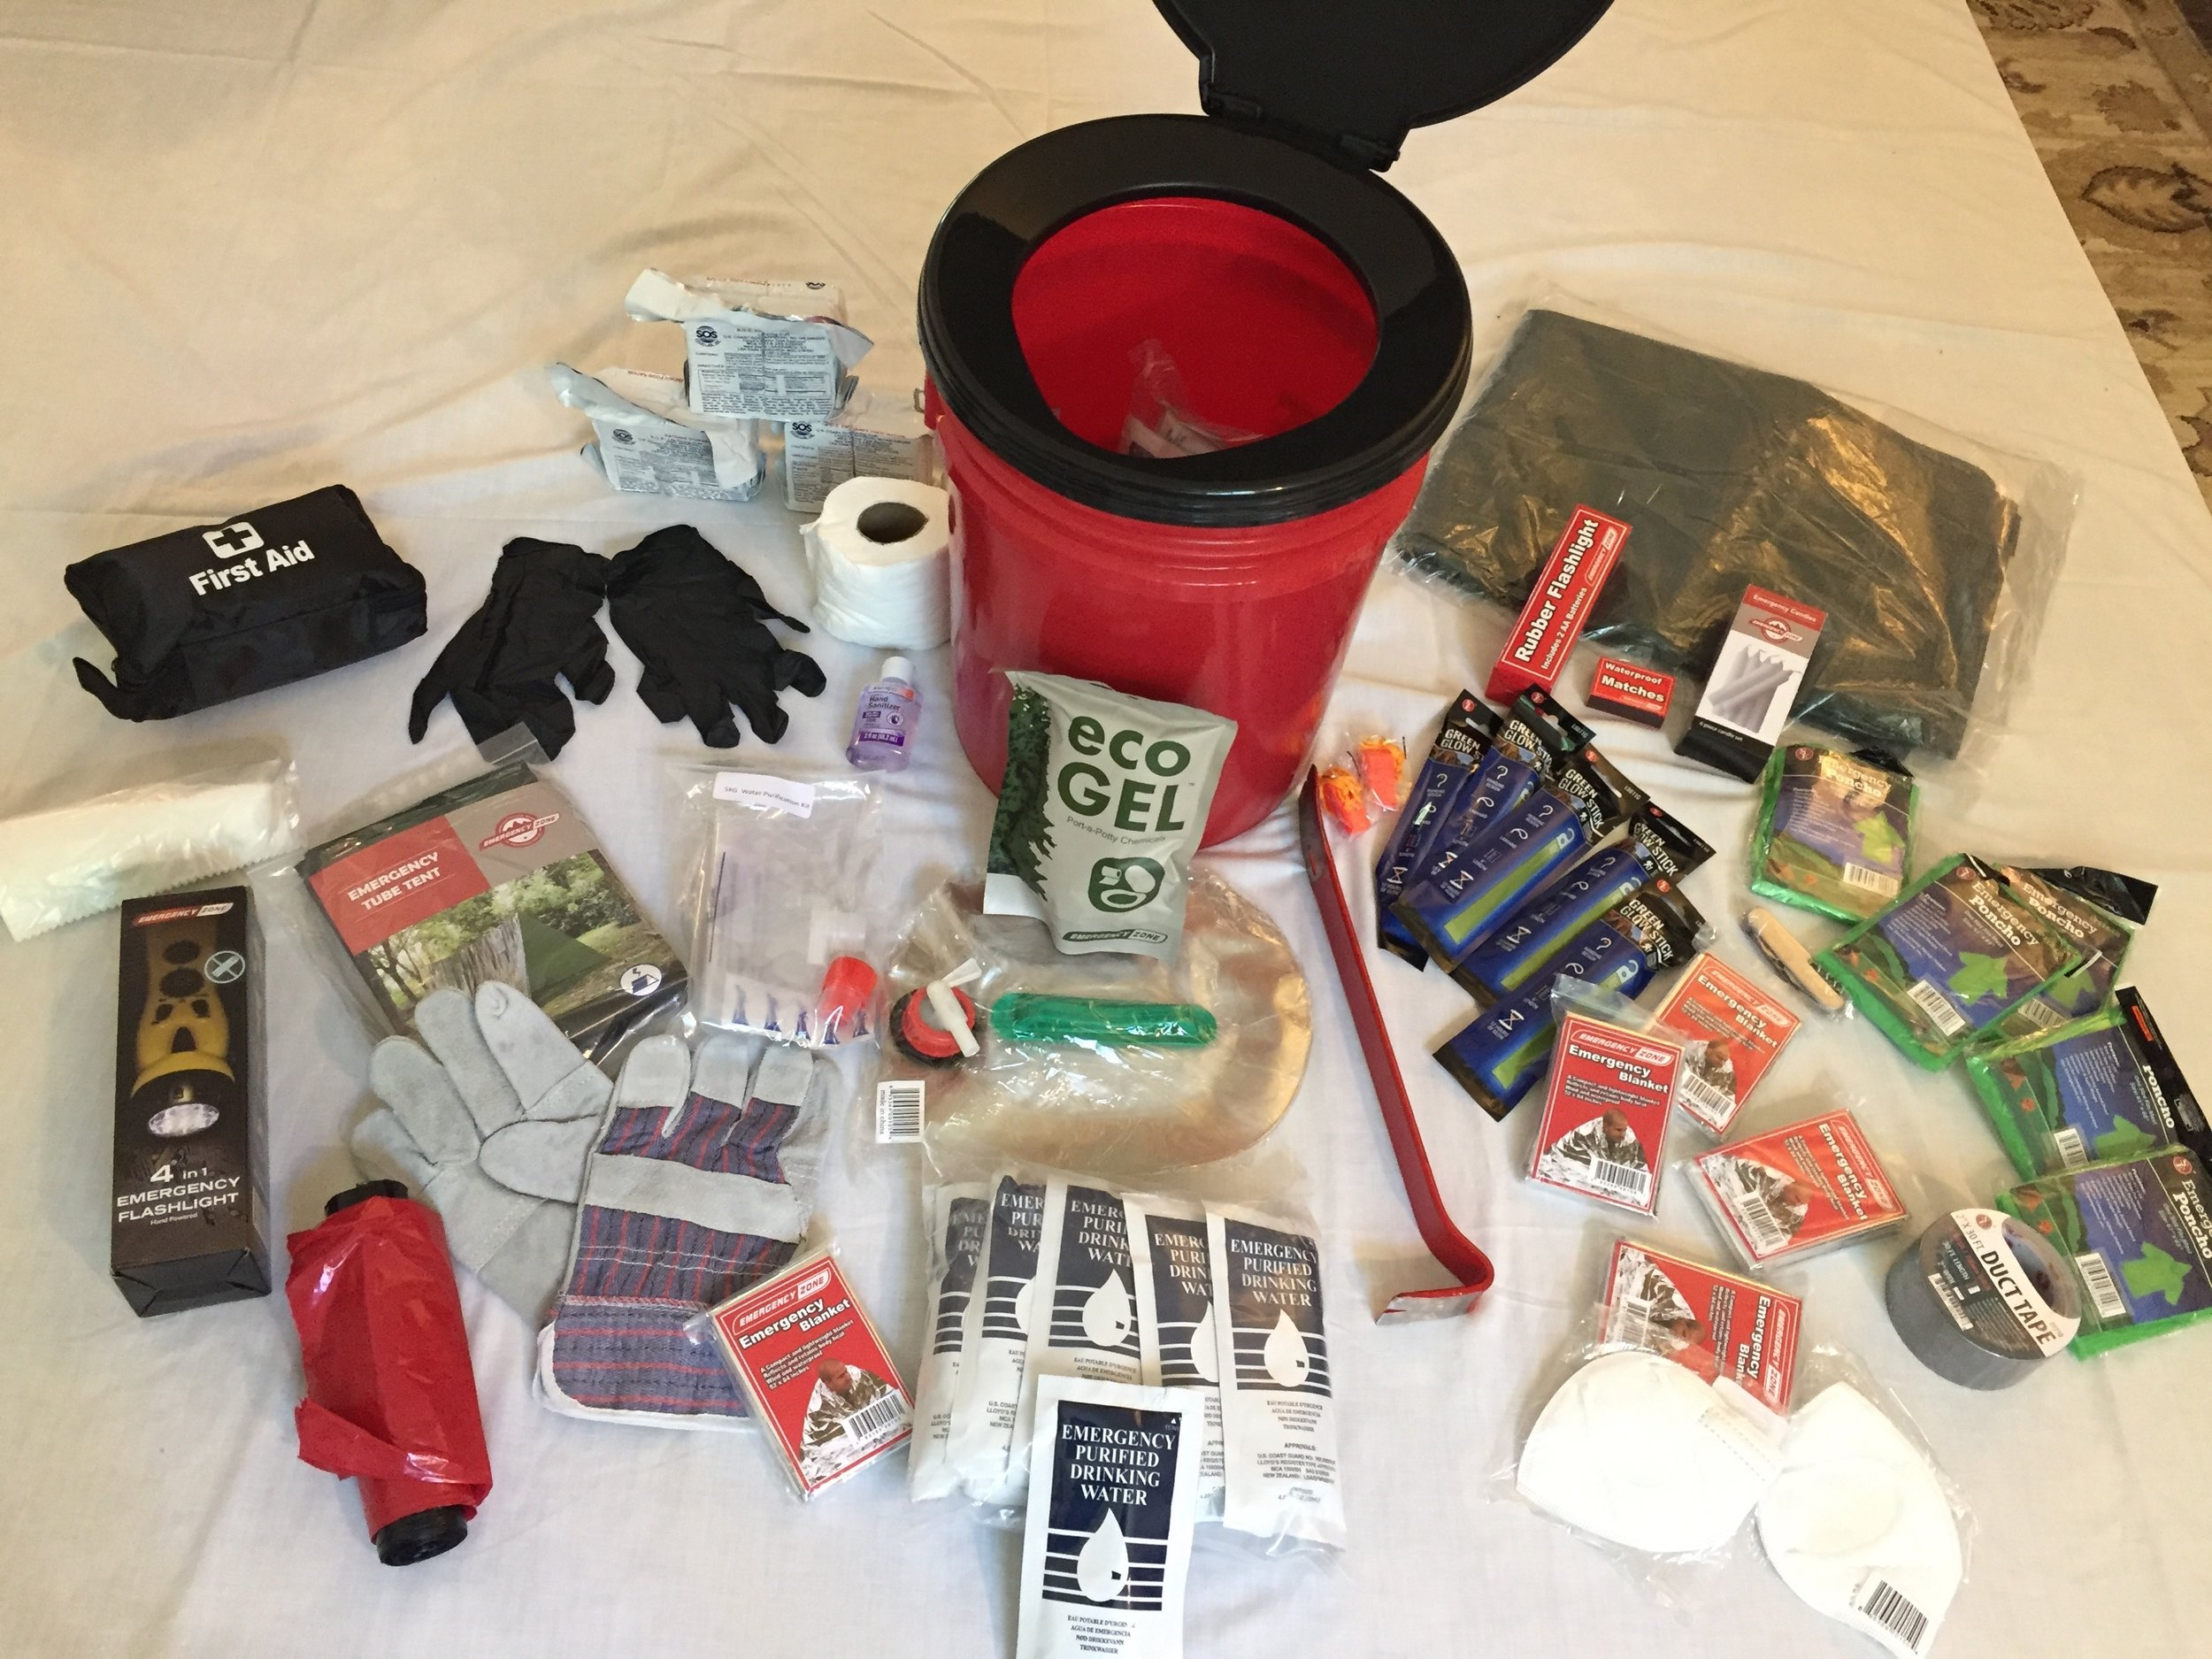 This bucket holds essentials (including a 'Honey Bucket' toilet kit) that enable ten people to use their workplace as an emergency shelter for three days. Do you have a stash like this to see your team through?